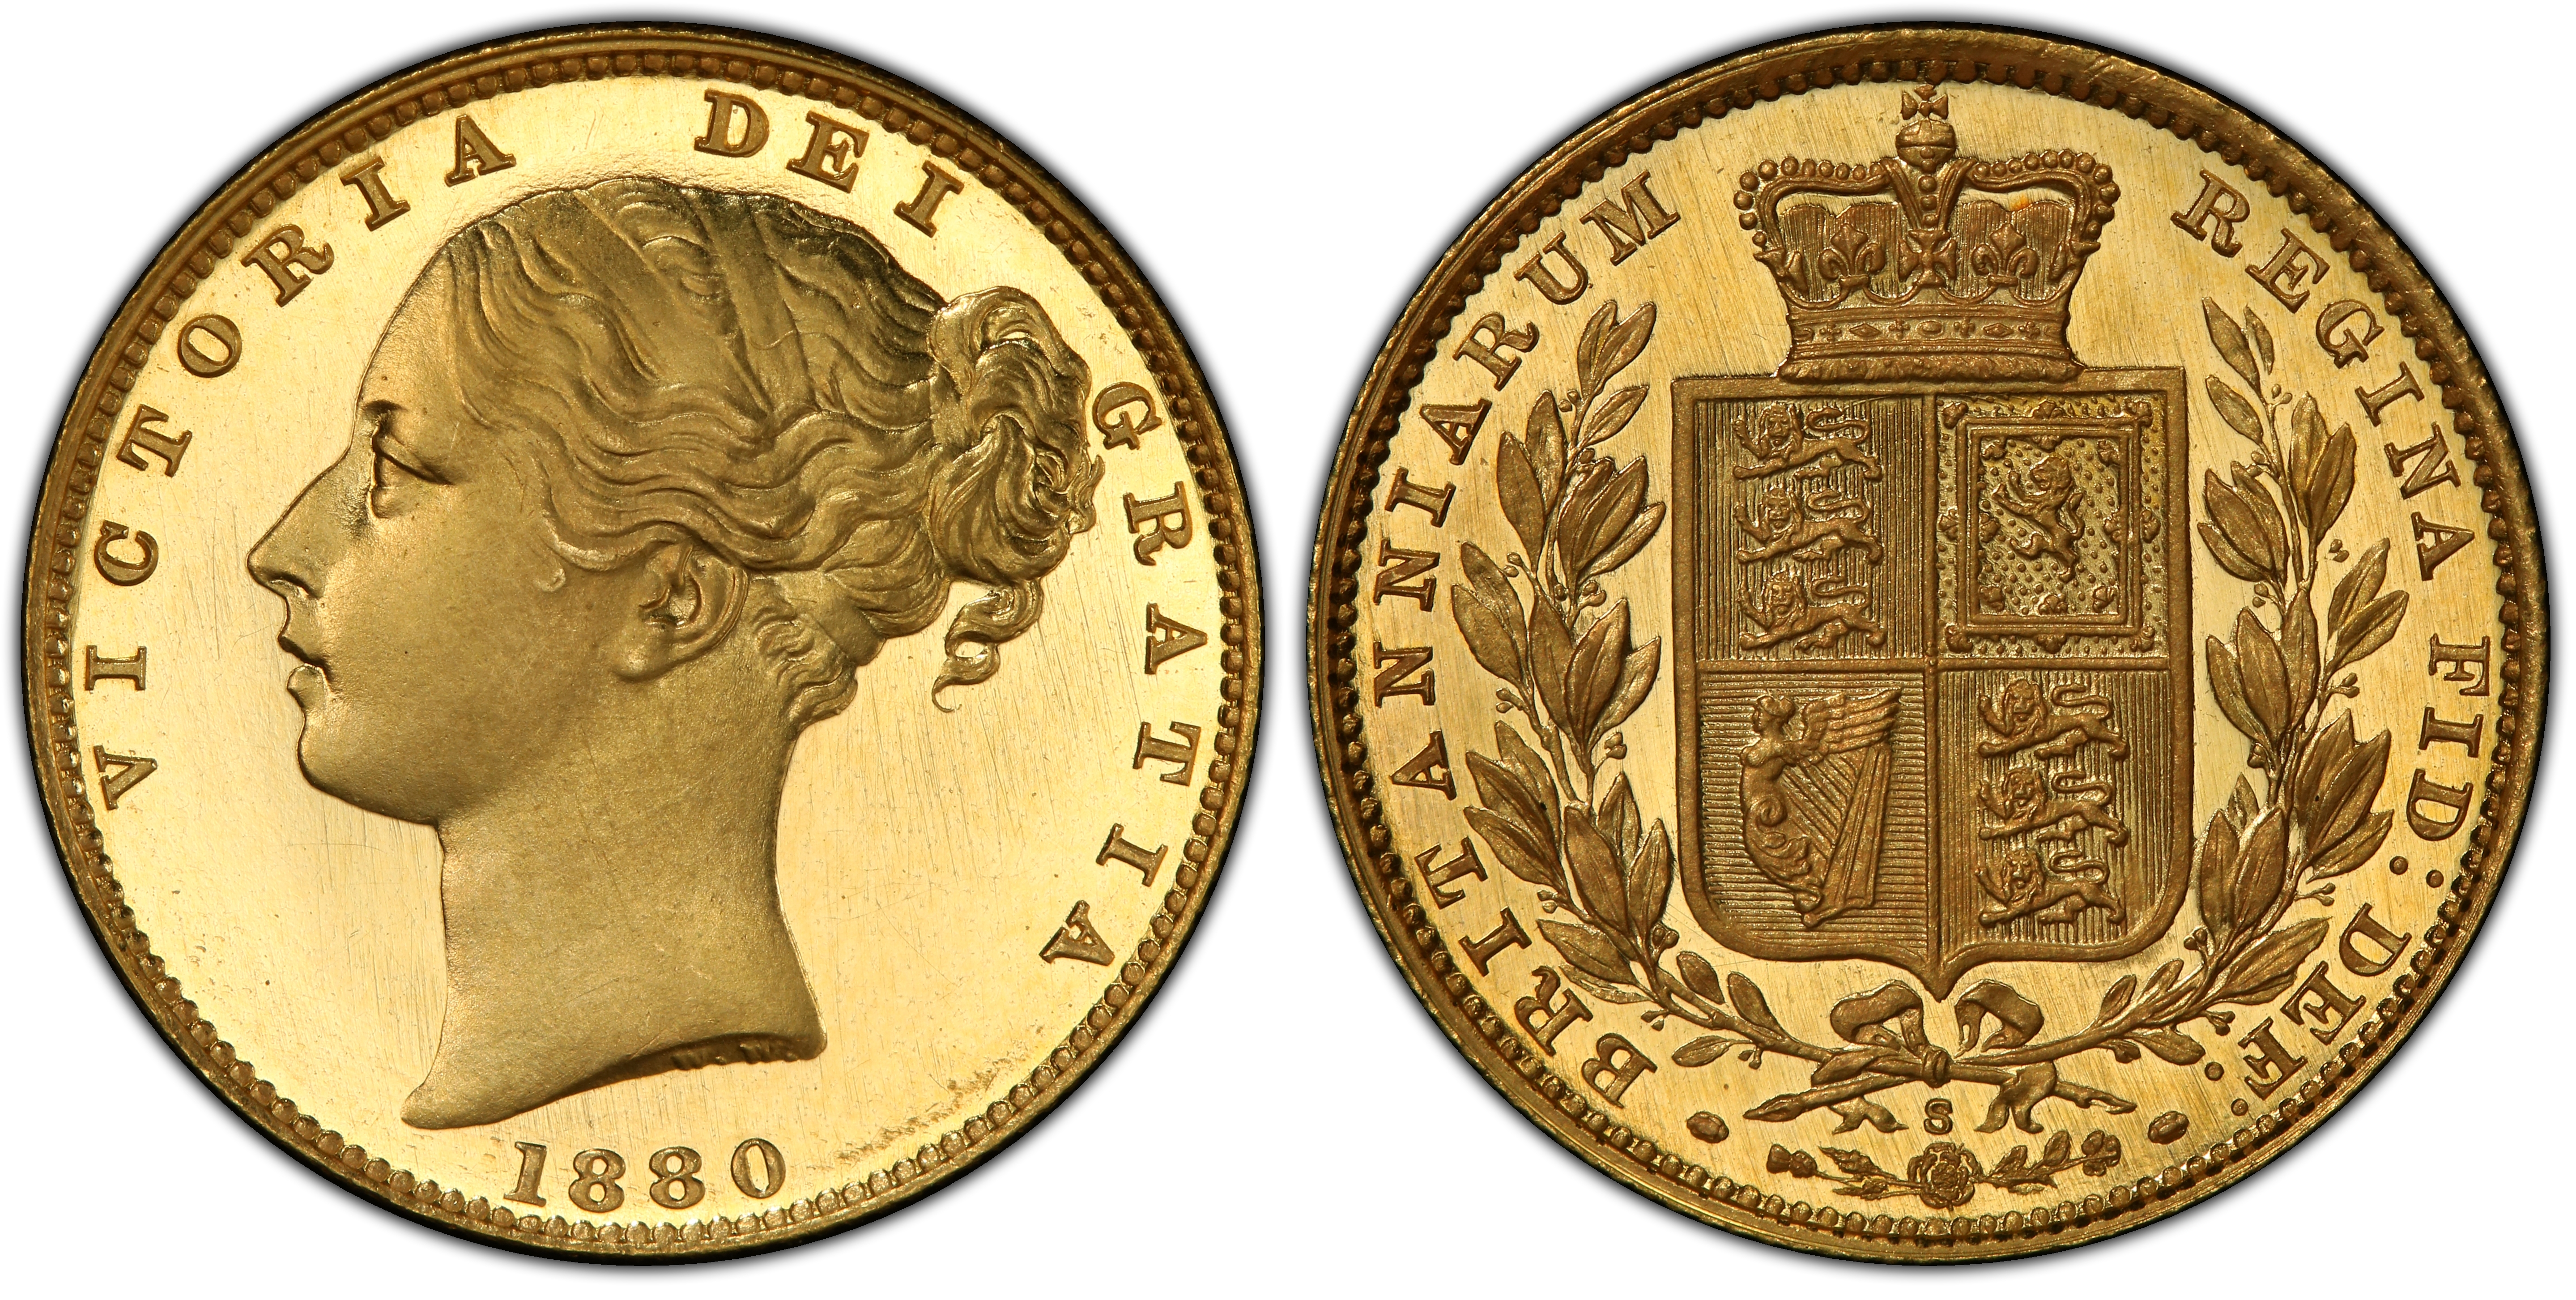 A rare 1880S Proof Sovereign graded by PCGS at PR65DC